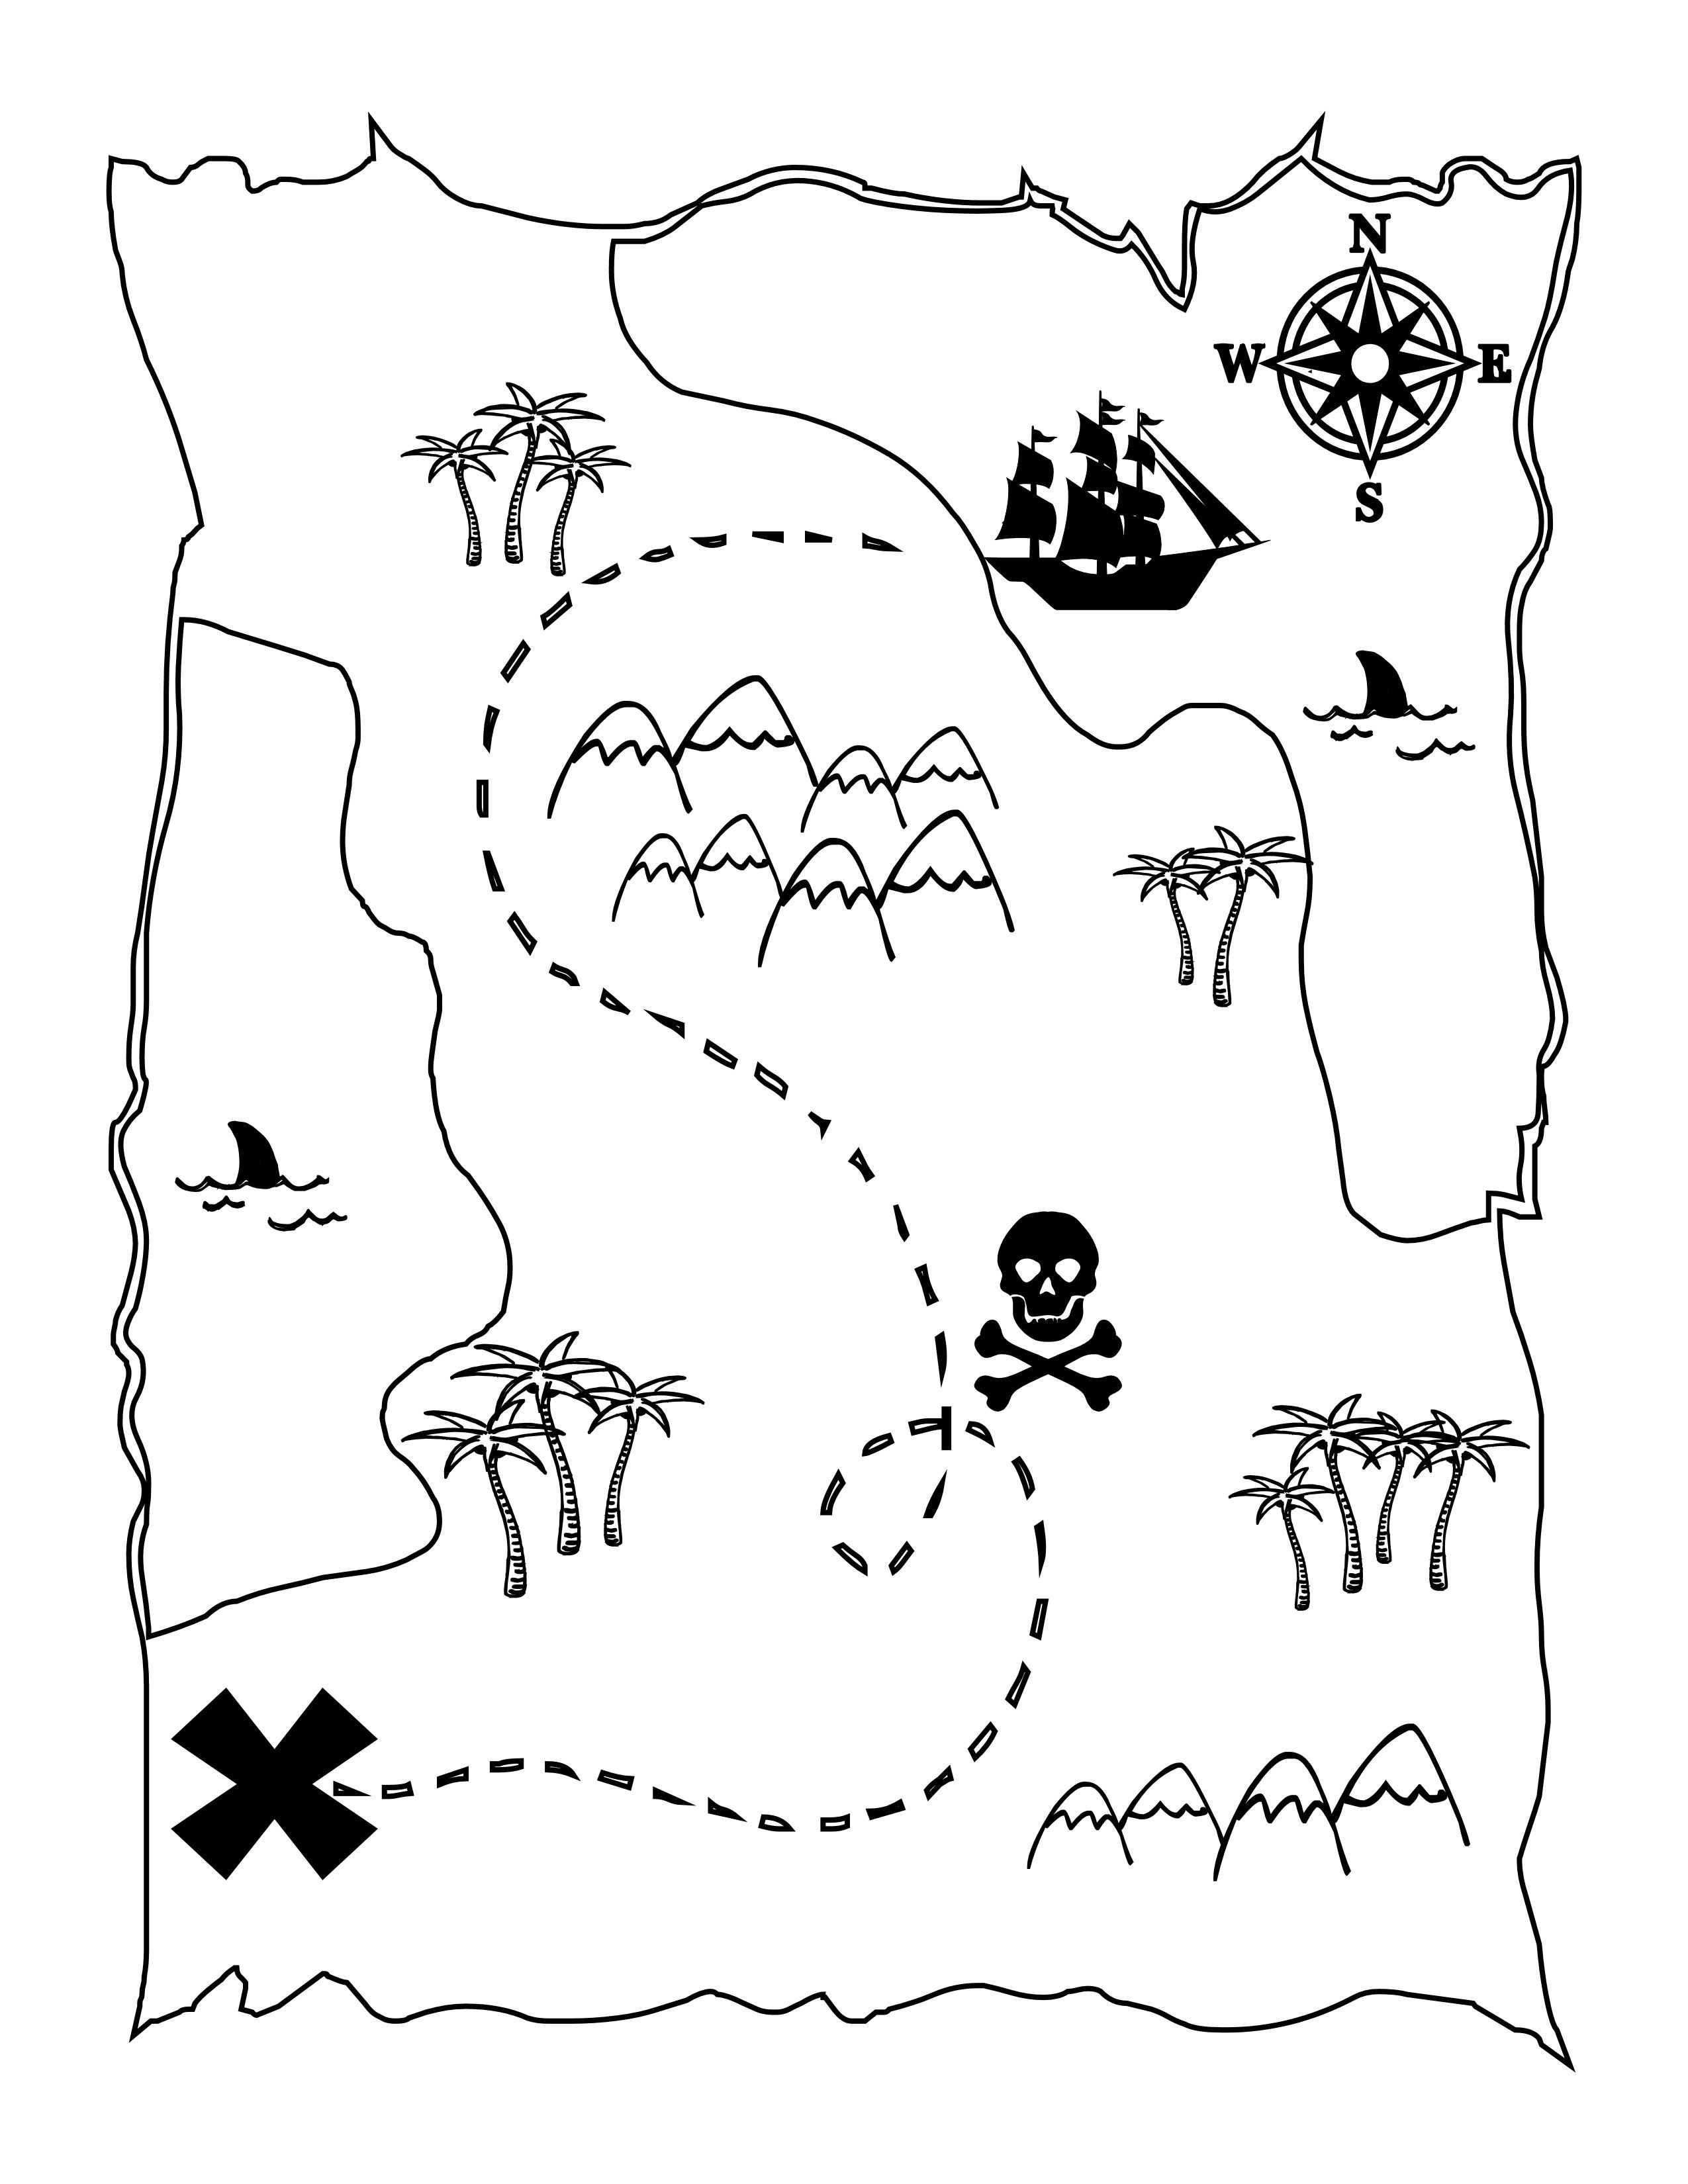 Printable Treasure Map Kids Activity | Printables | Pinterest - Free Printable Pirate Maps